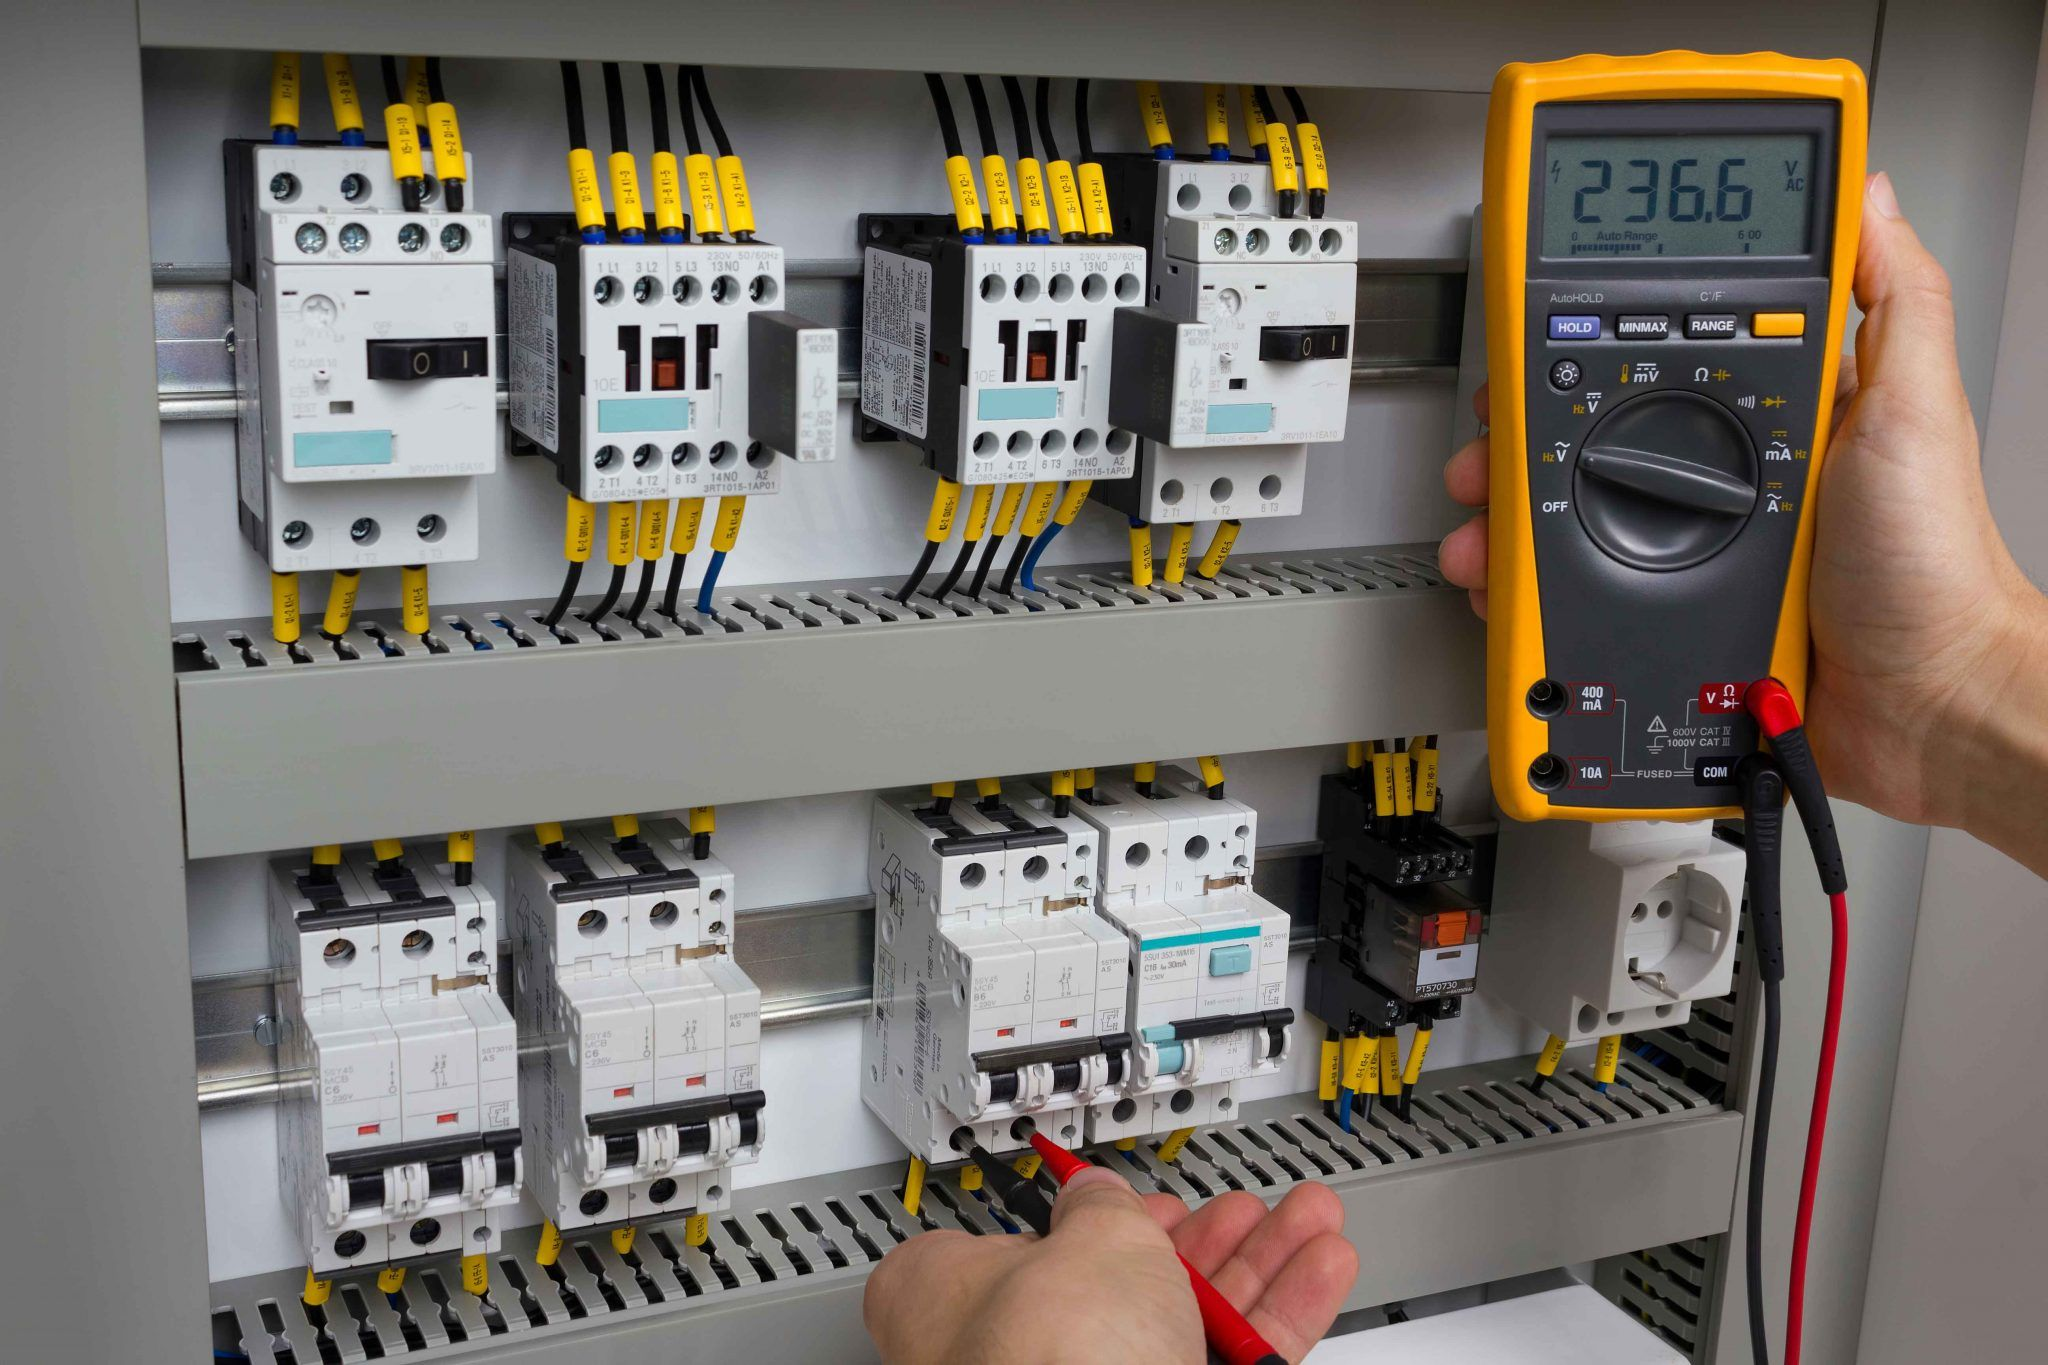 Commercial Building Electrical Certificate Electrical Certificate Electrical Safety Generator Installation